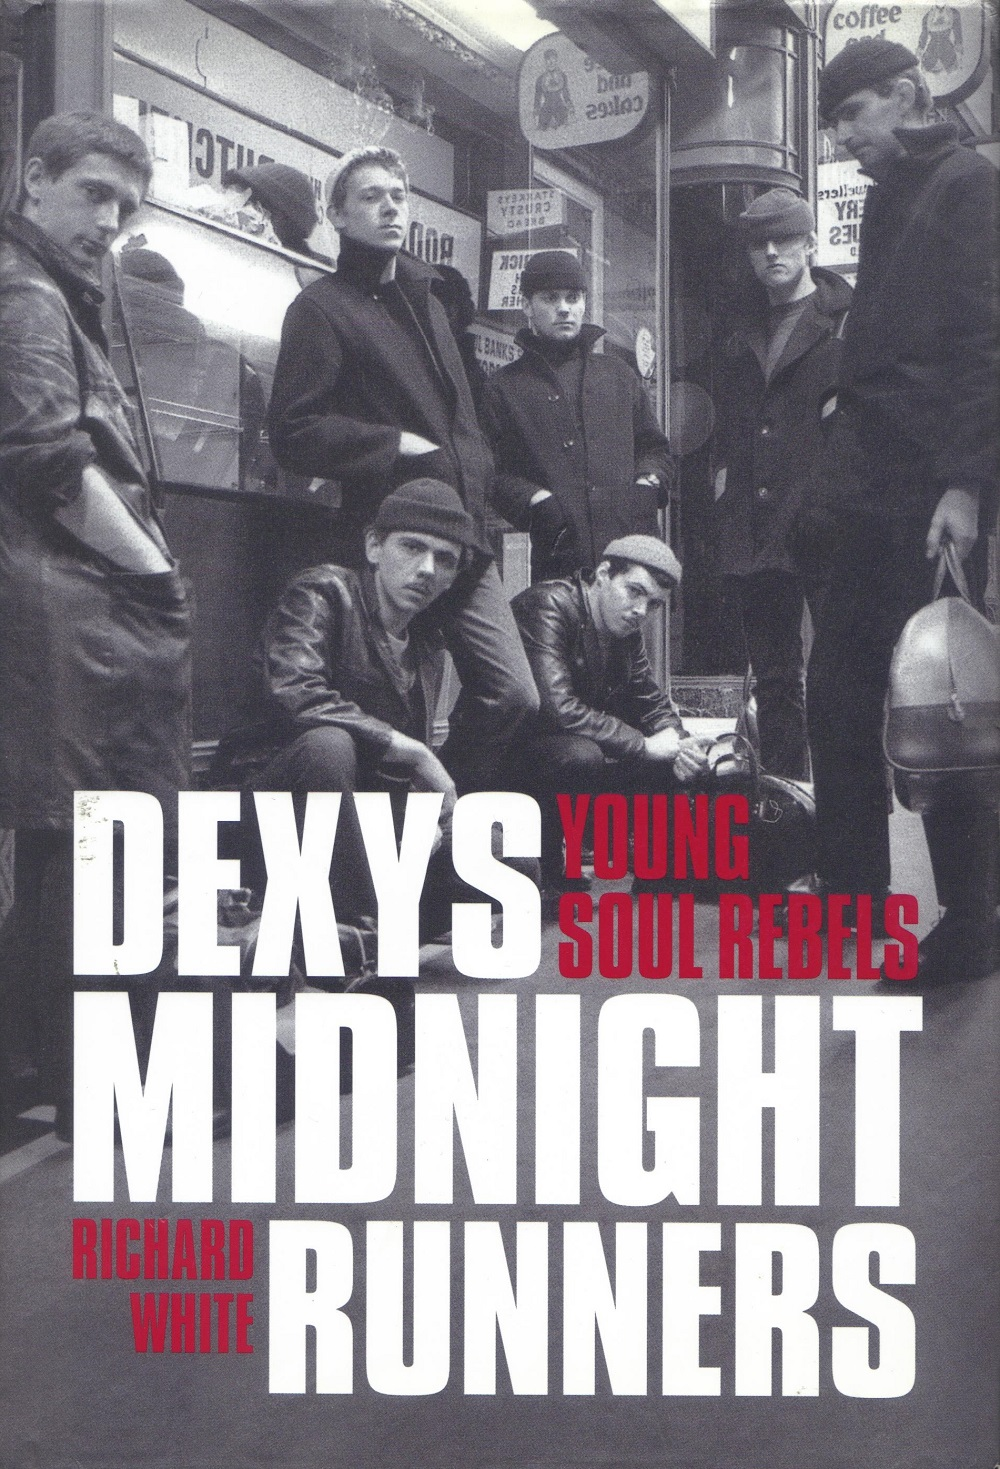 The Midnight Rebels The Midnite Rebels Don't Make Me Over